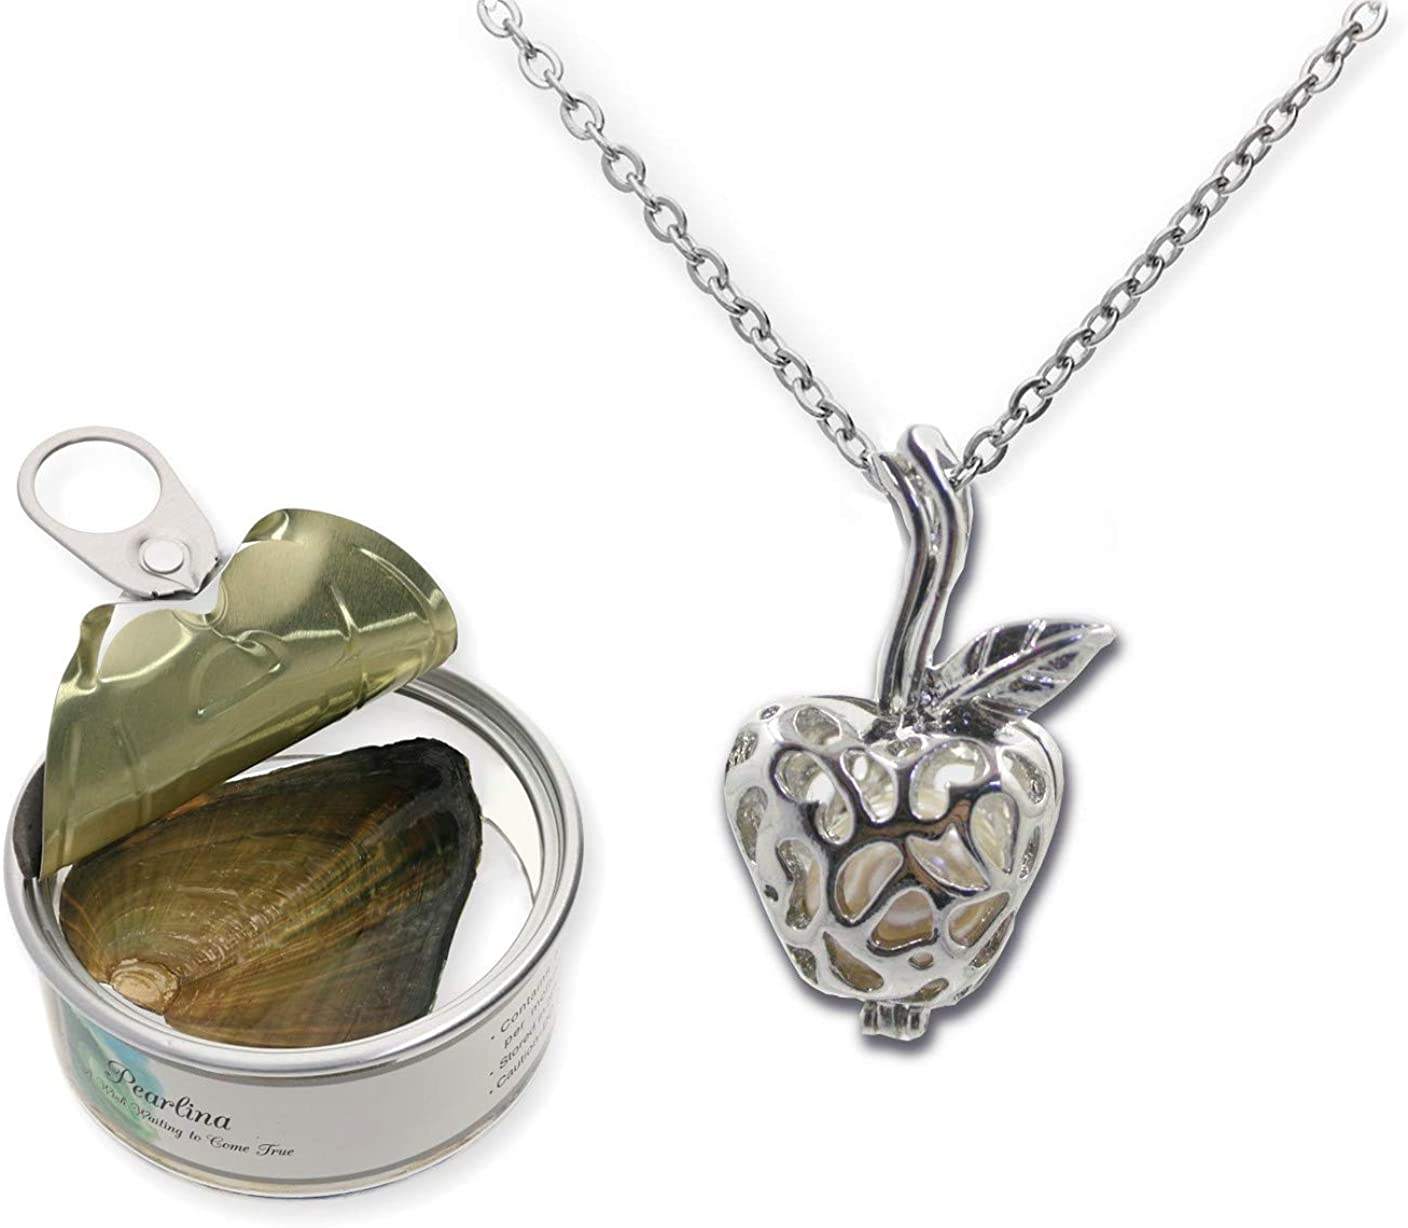 Pearlina Teachers Apple Necklace Cultured Pearl in Oyster Set Silver-tone Cage W/Stainless Steel Chain 18""